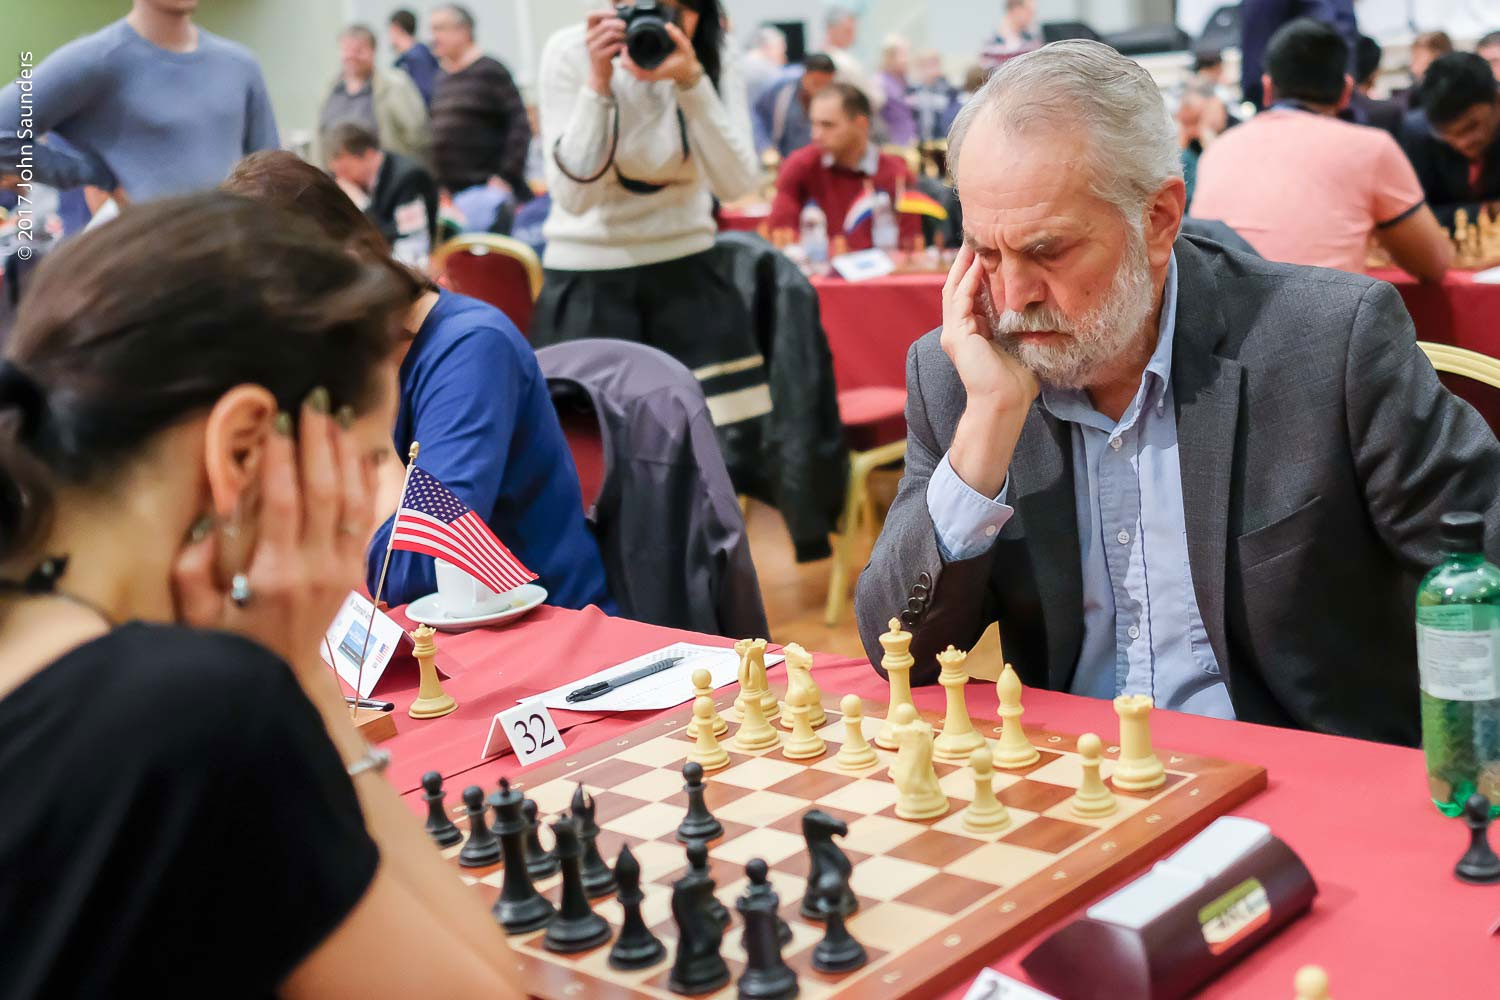 http://en.chessbase.com/Portals/all/2017/_eng/events/Isle%20of%20Man/rd9/kosteniuk-tarjan-isle-of-man-JS.jpg